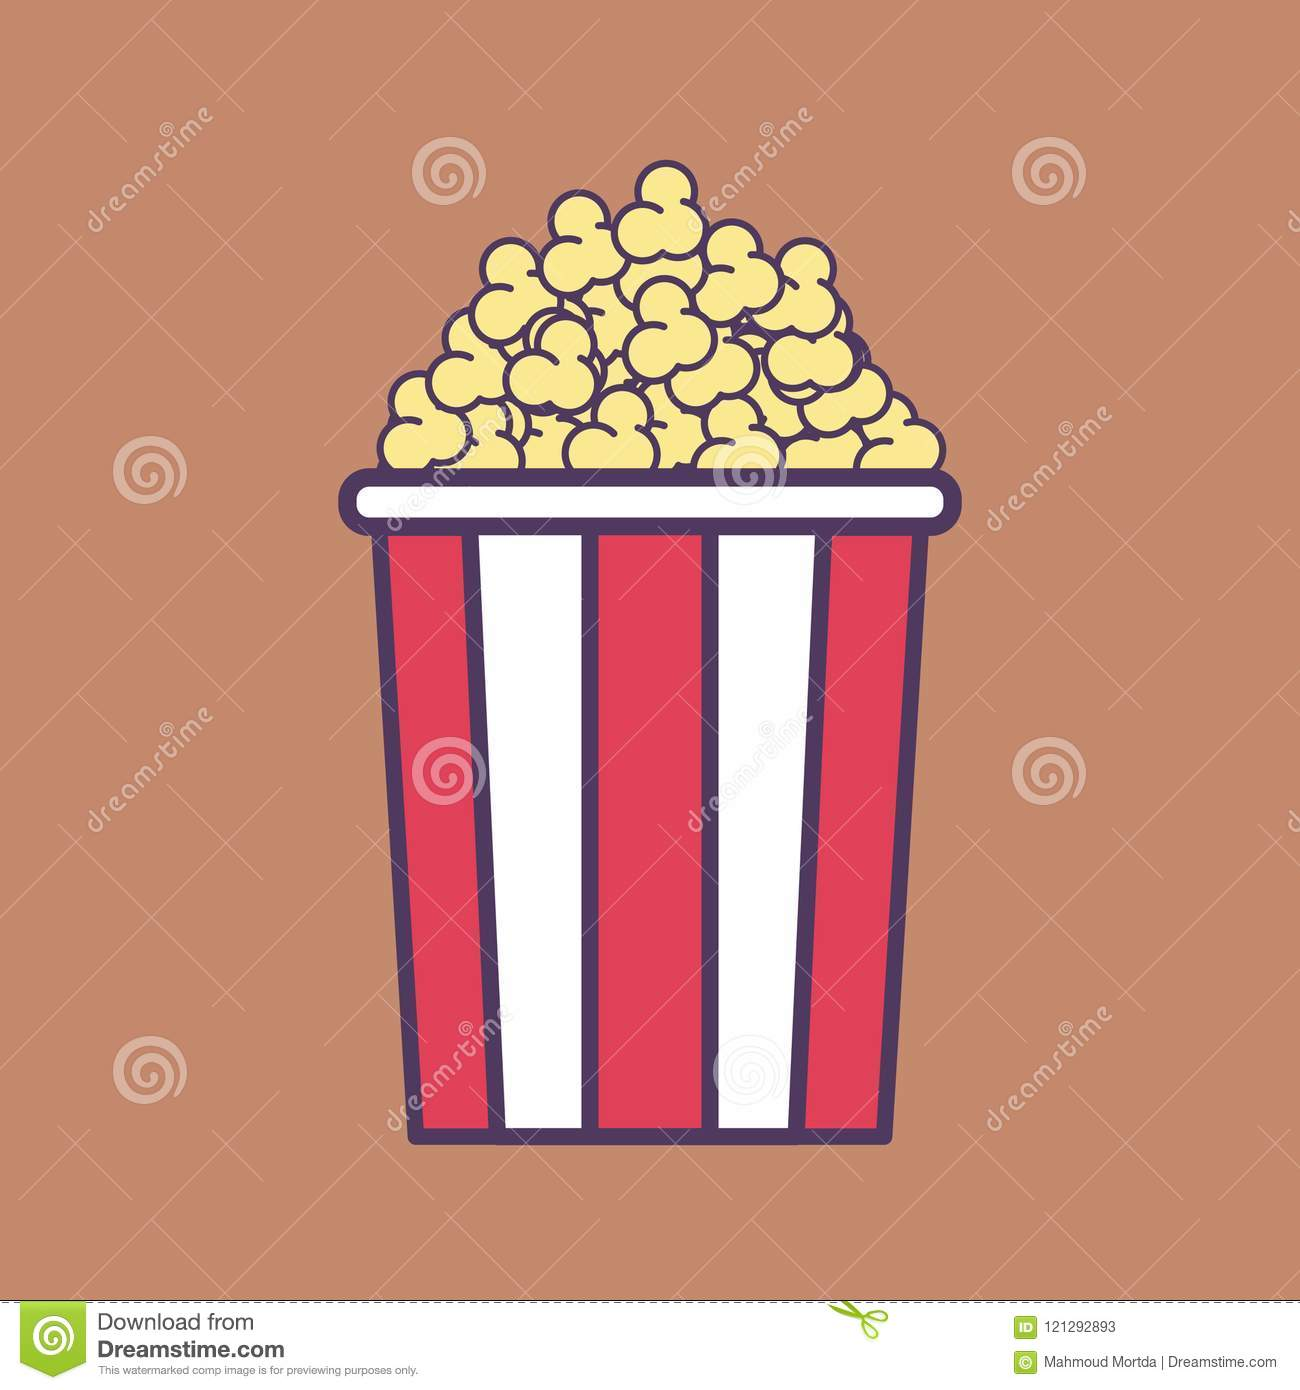 A High Quality Flat Vector Illustration Of A Popcorn Bucket